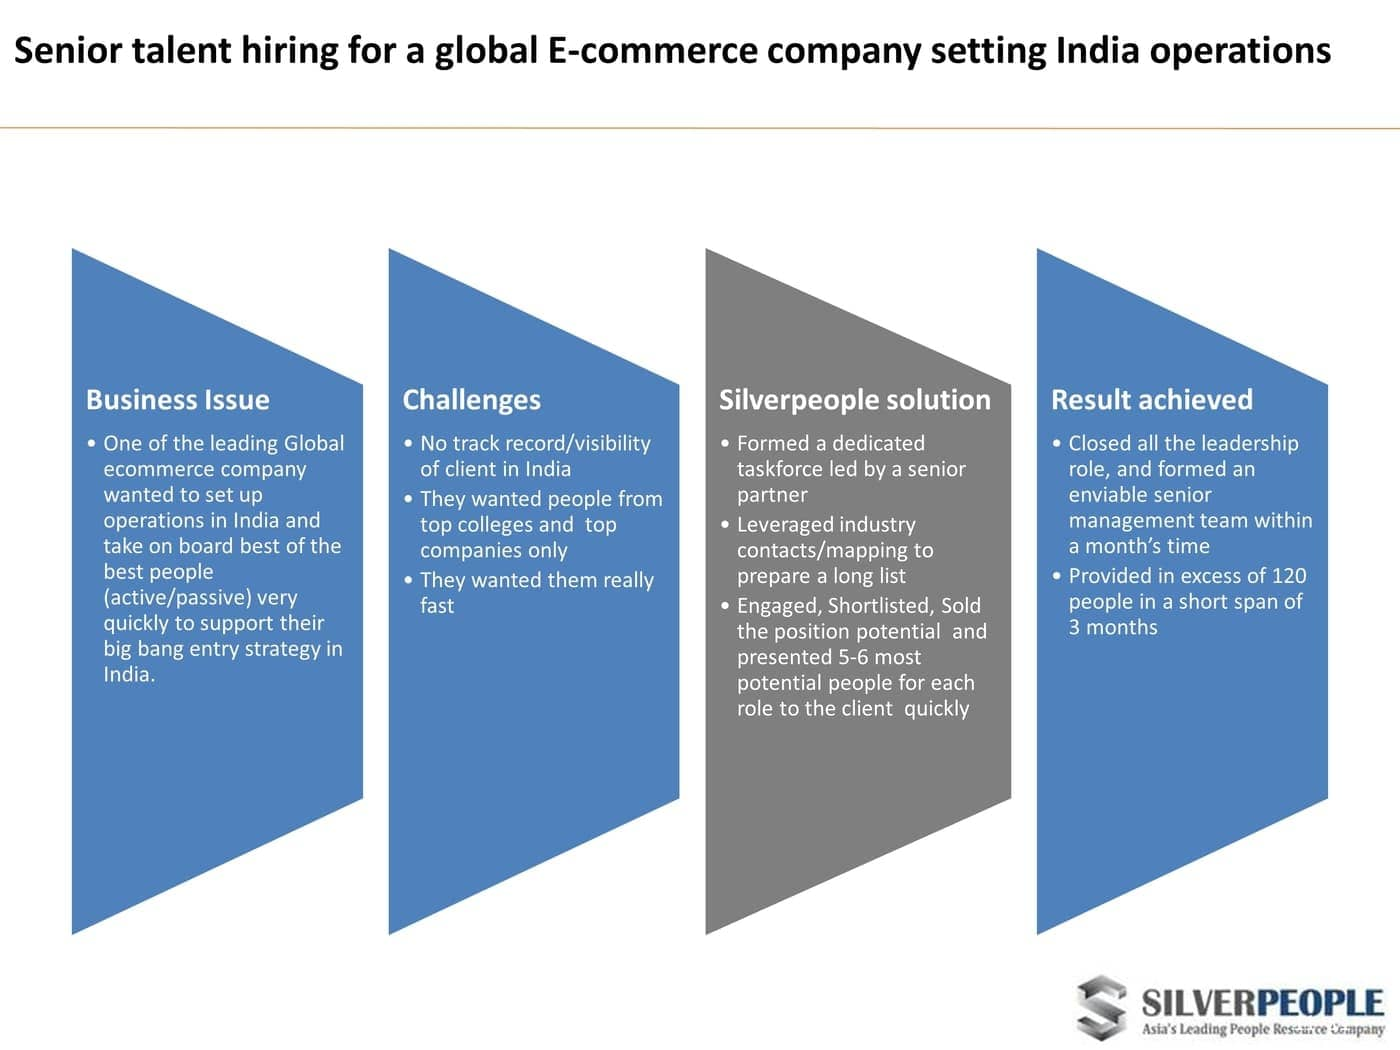 Senior talent hiring for a global E-commerce company setting India operations